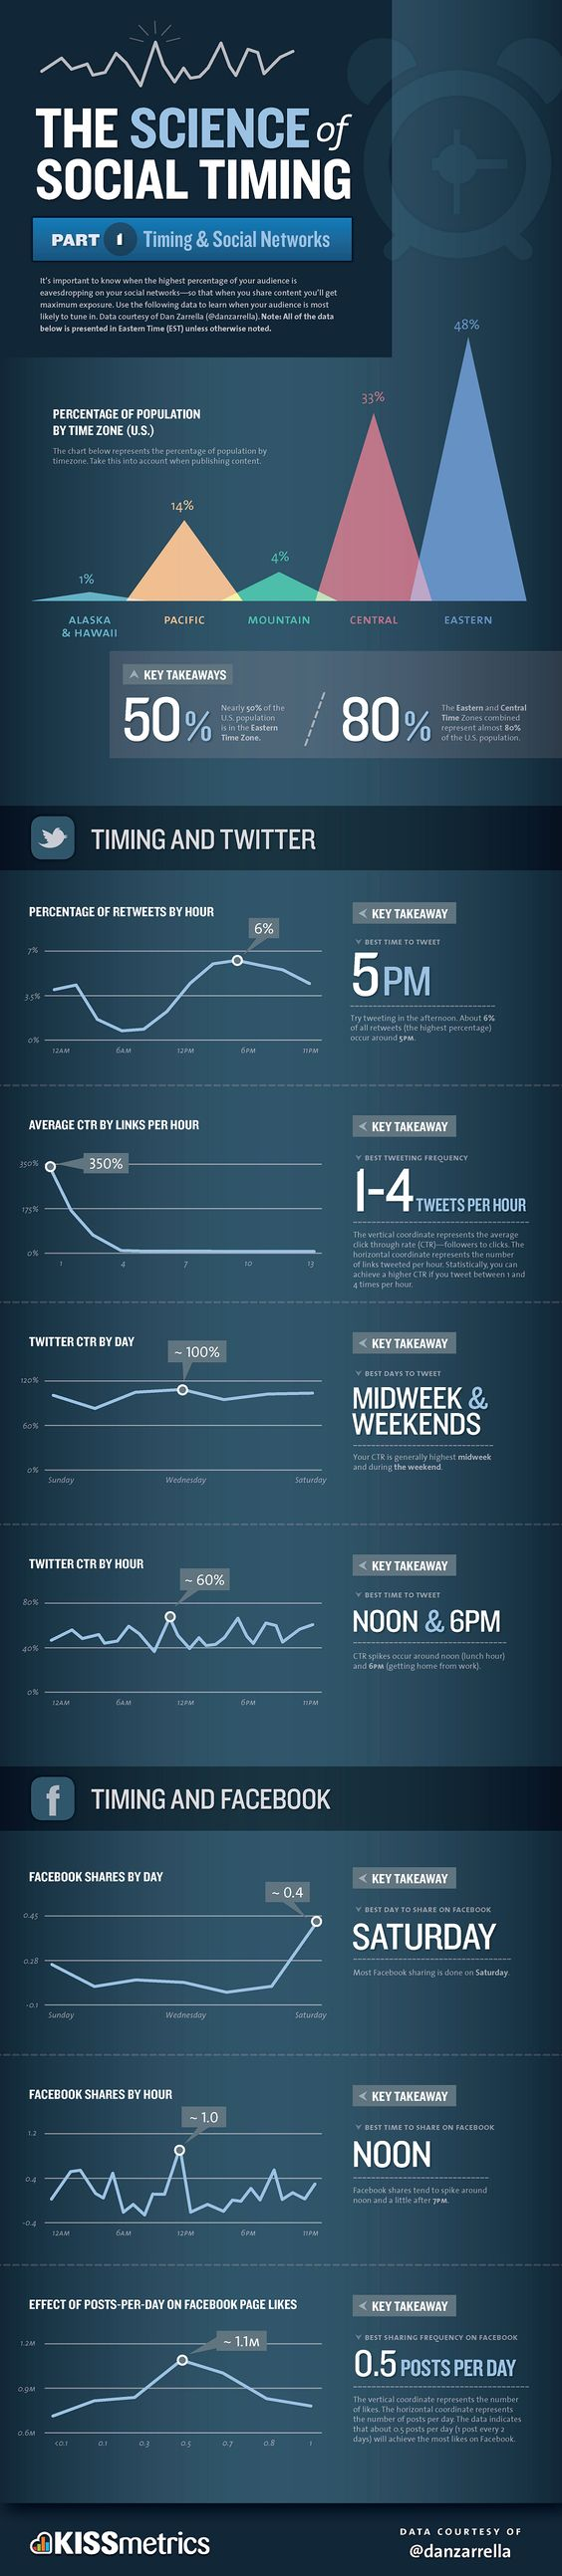 When is the Best Time to Post on Facebook and Twitter?